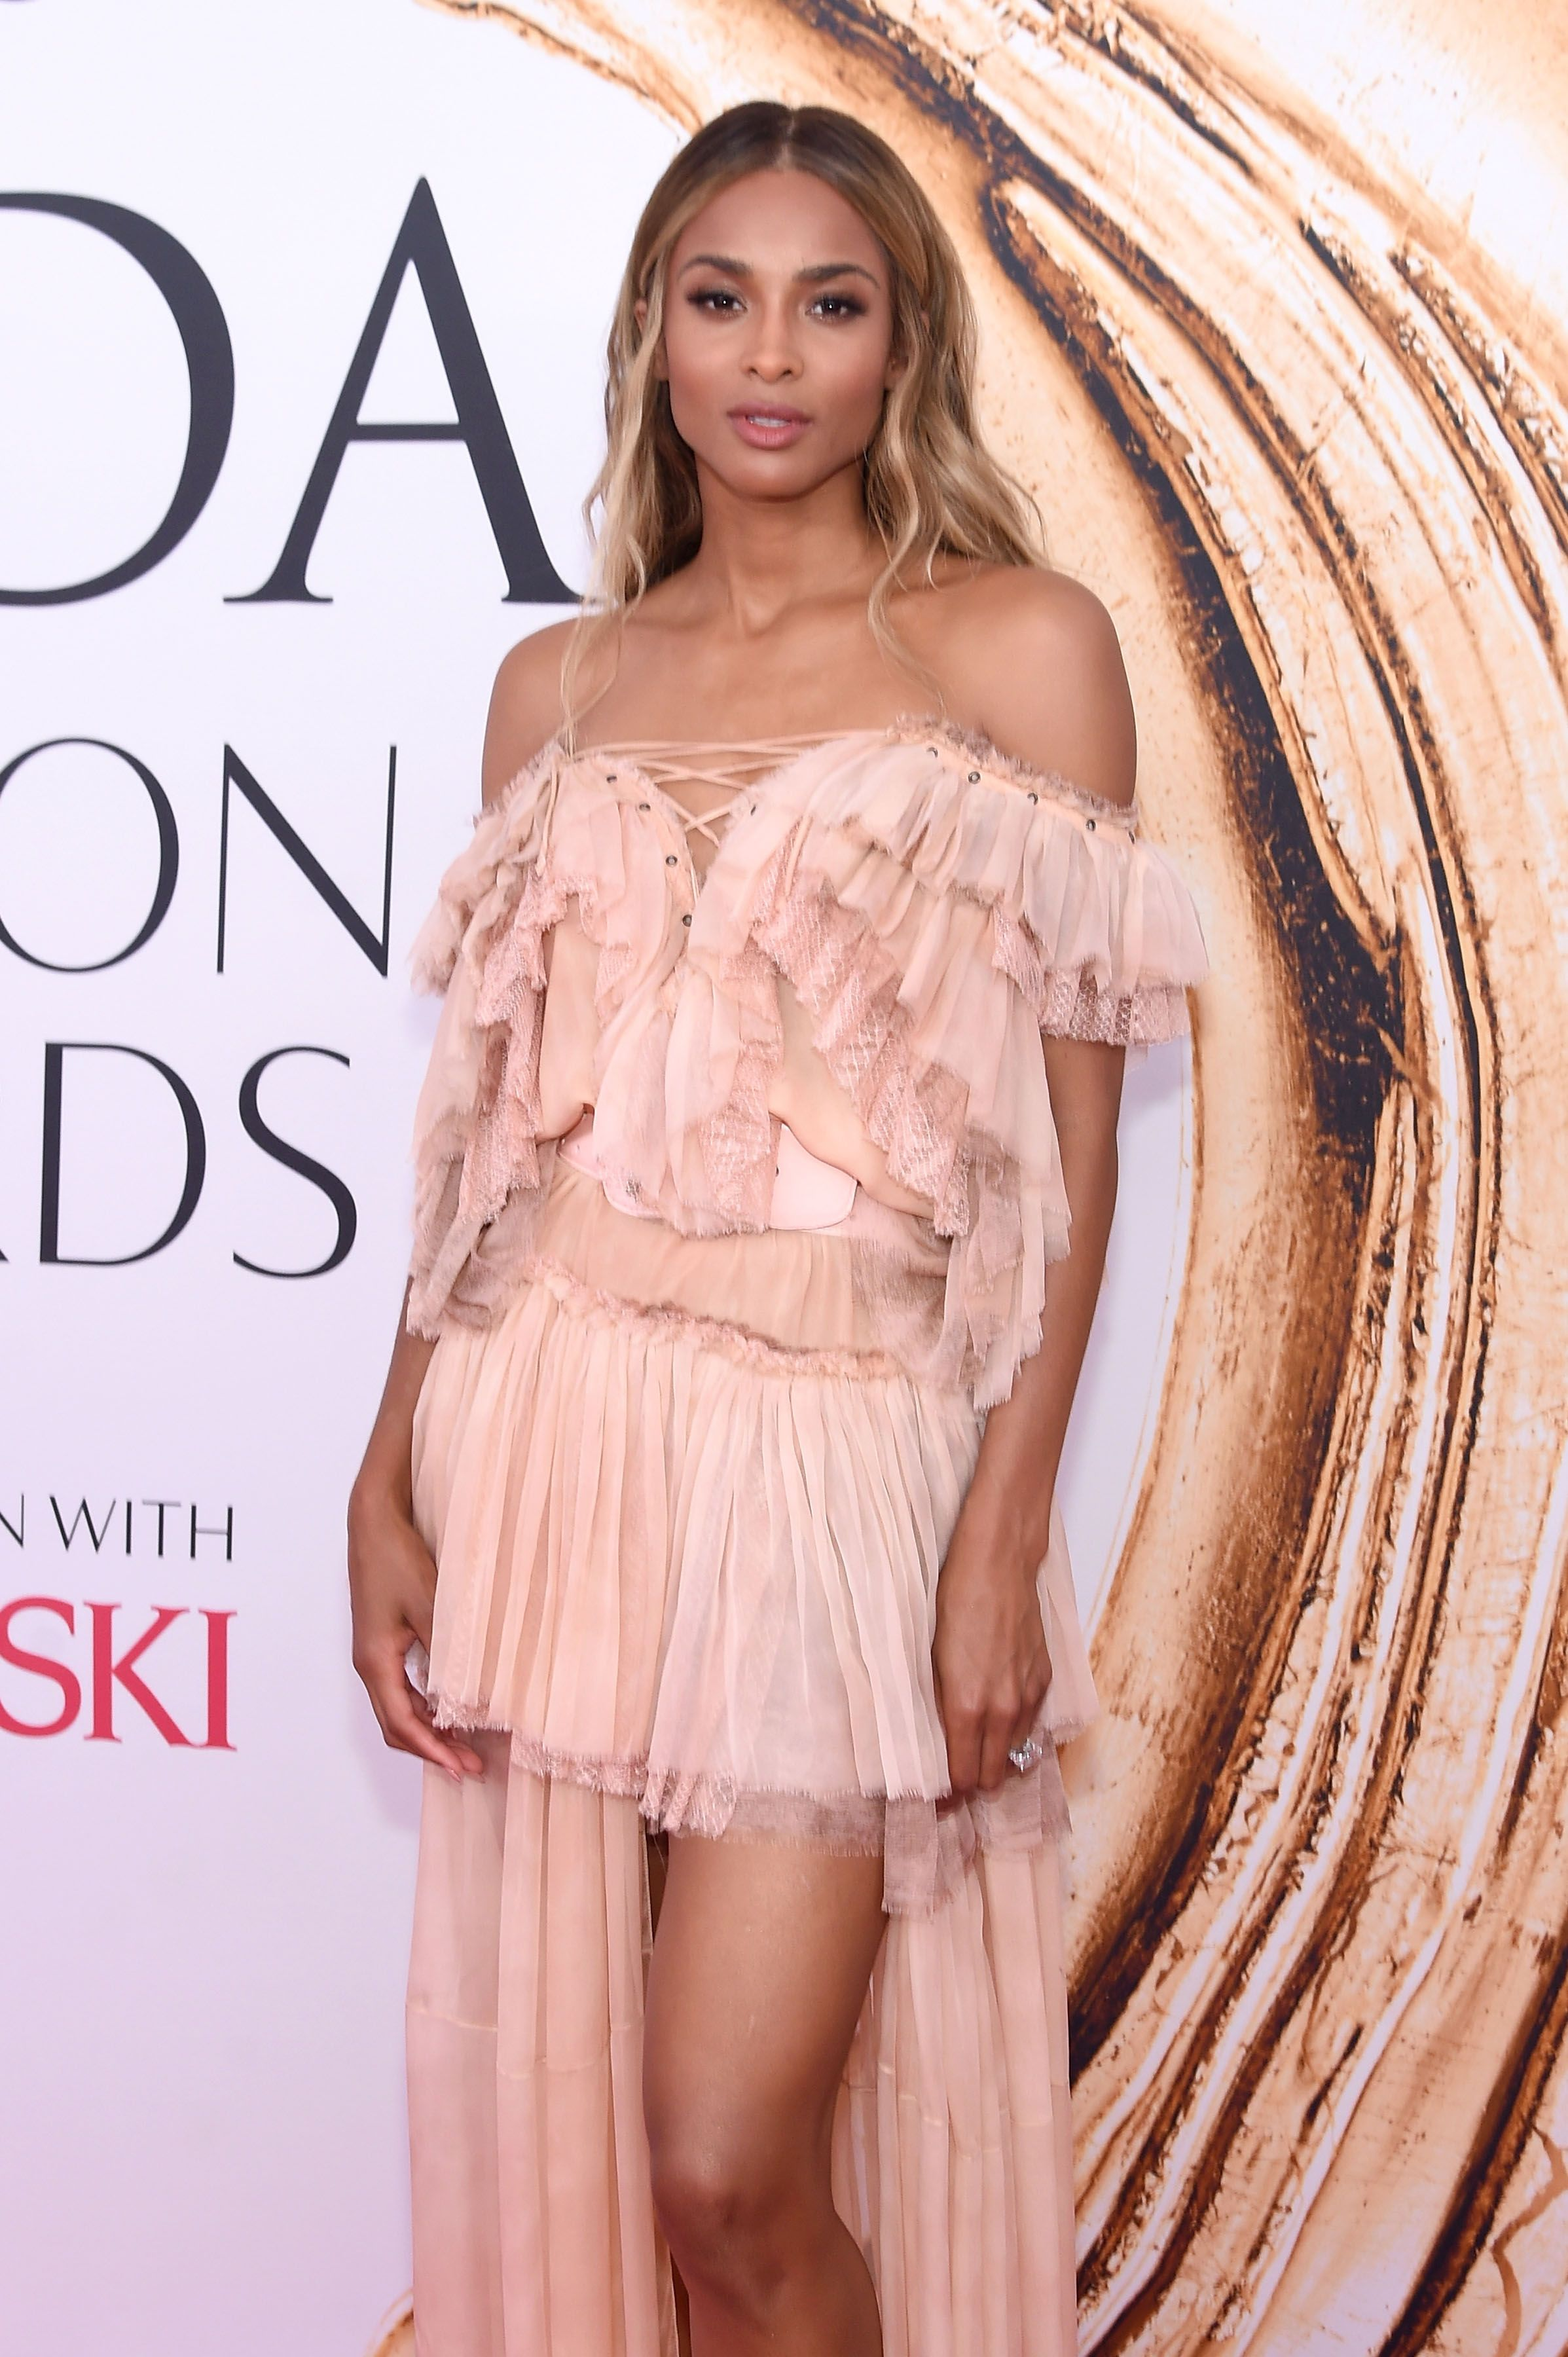 Ciara at the CFDA Fashion Awards on June 6, 2016 in N.Y. | Photo: Getty Images